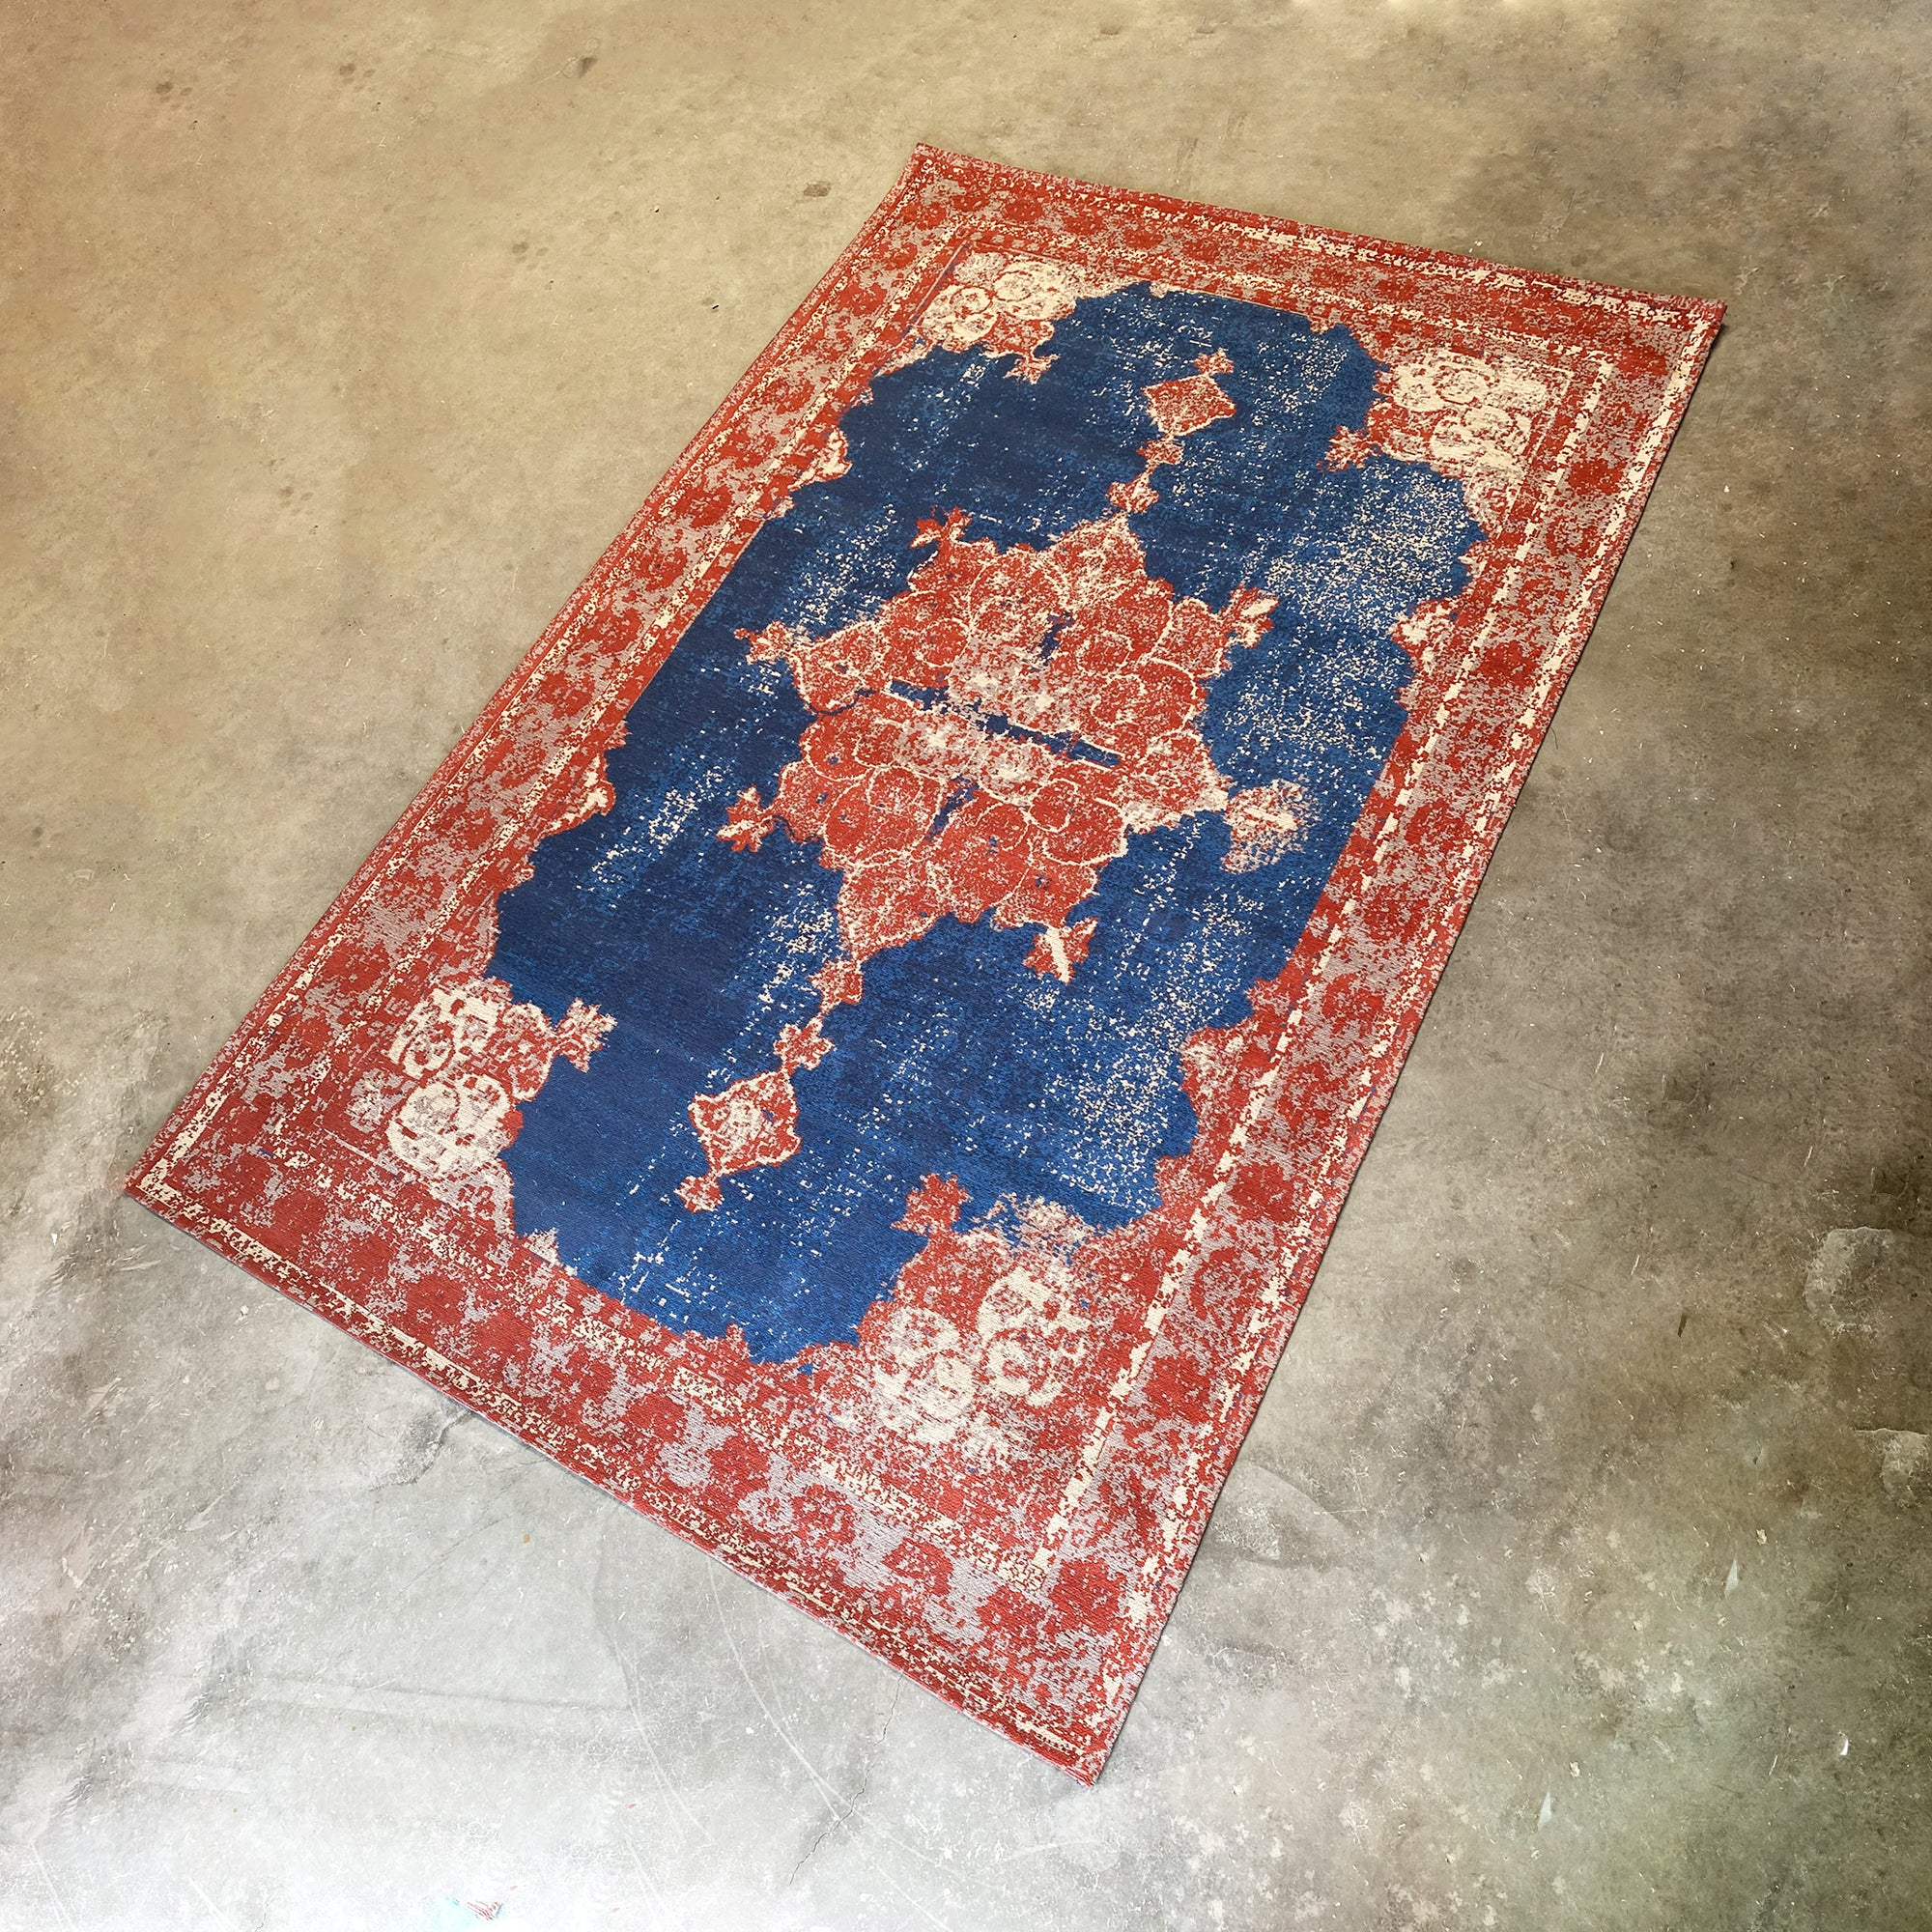 230X160 cm  handmade Rug Melenia-MX-163-indigo rust  L -  230X160 سم سجادة ميلينيا صناعة يدوية - Shop Online Furniture and Home Decor Store in Dubai, UAE at ebarza